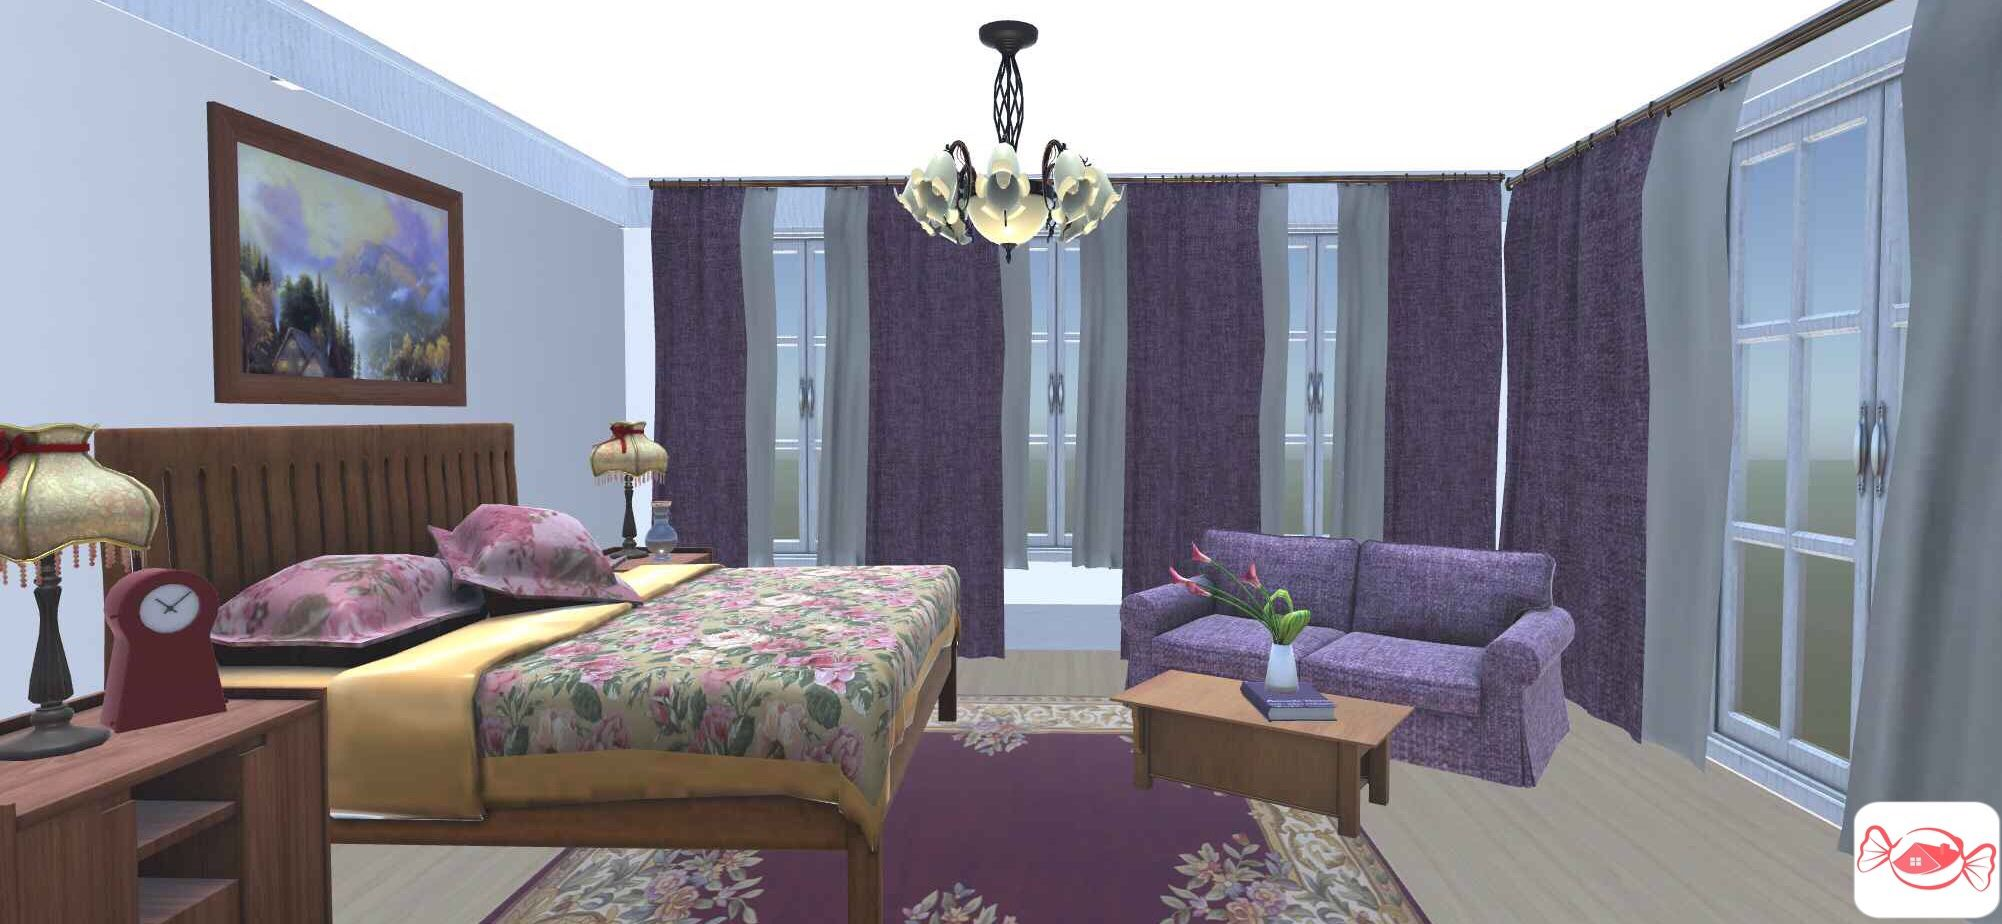 Modern victorian bedroom created with home sweet home 3d app